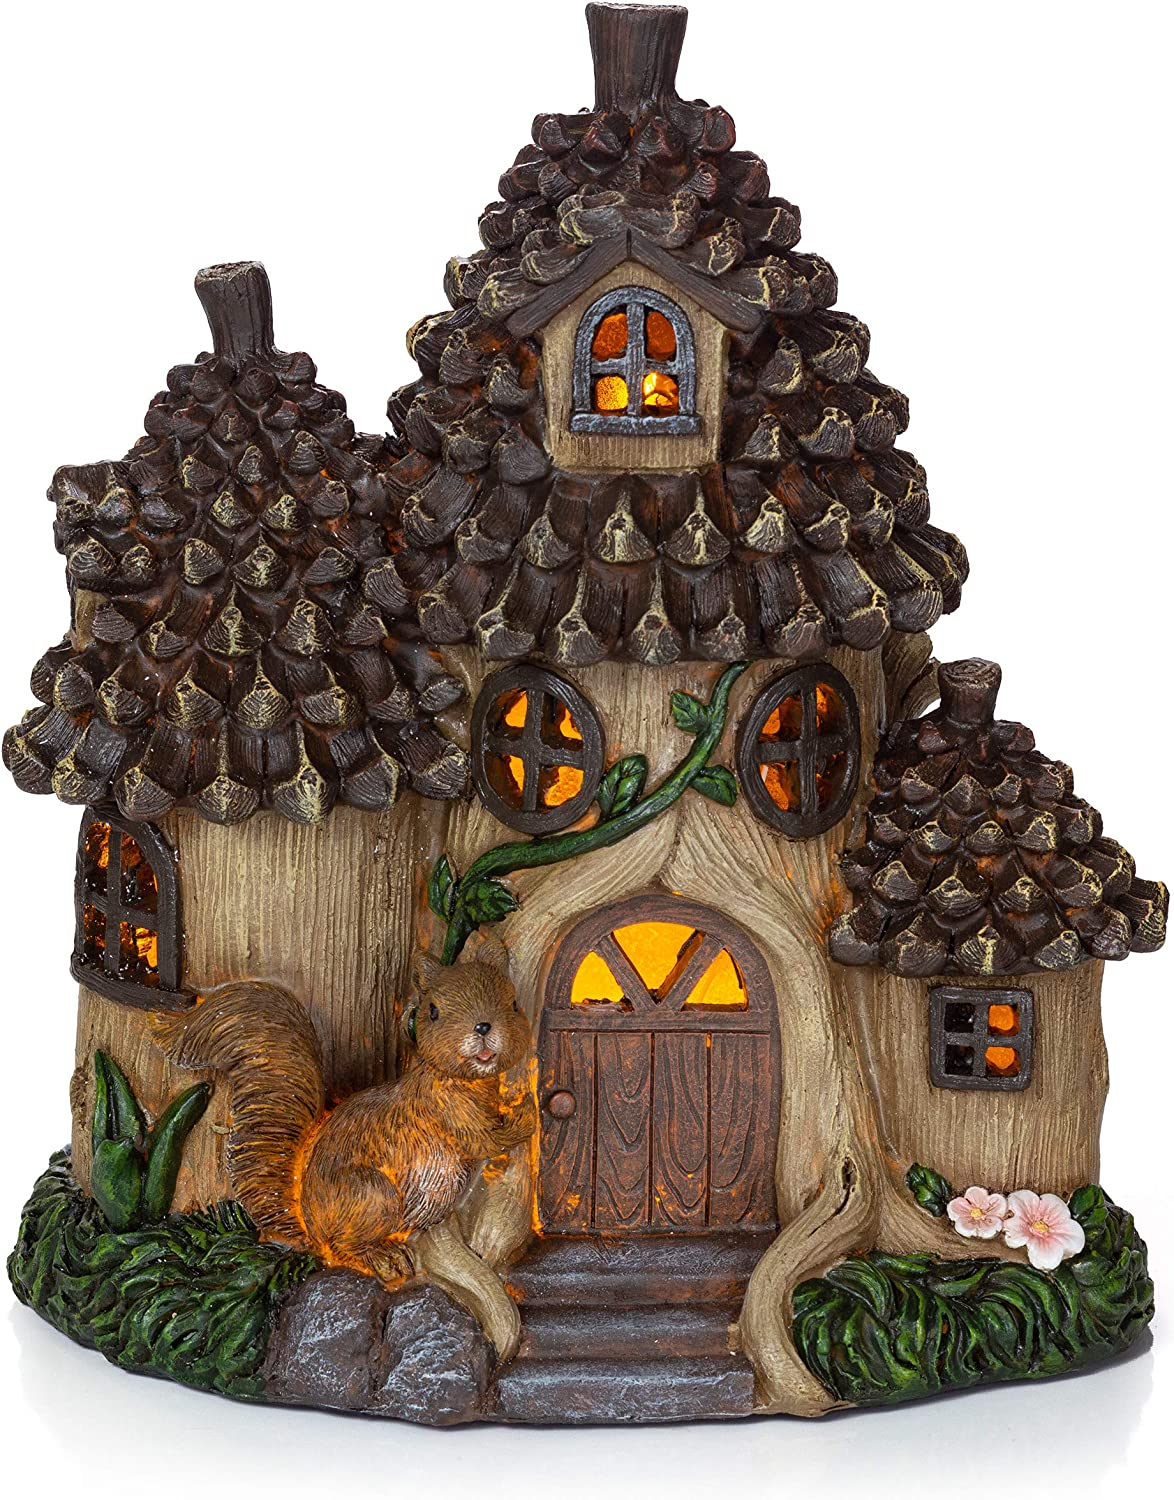 VP Home Pinecone Squirrel Cottage Solar Powered LED Outdoor Decor Garden Light